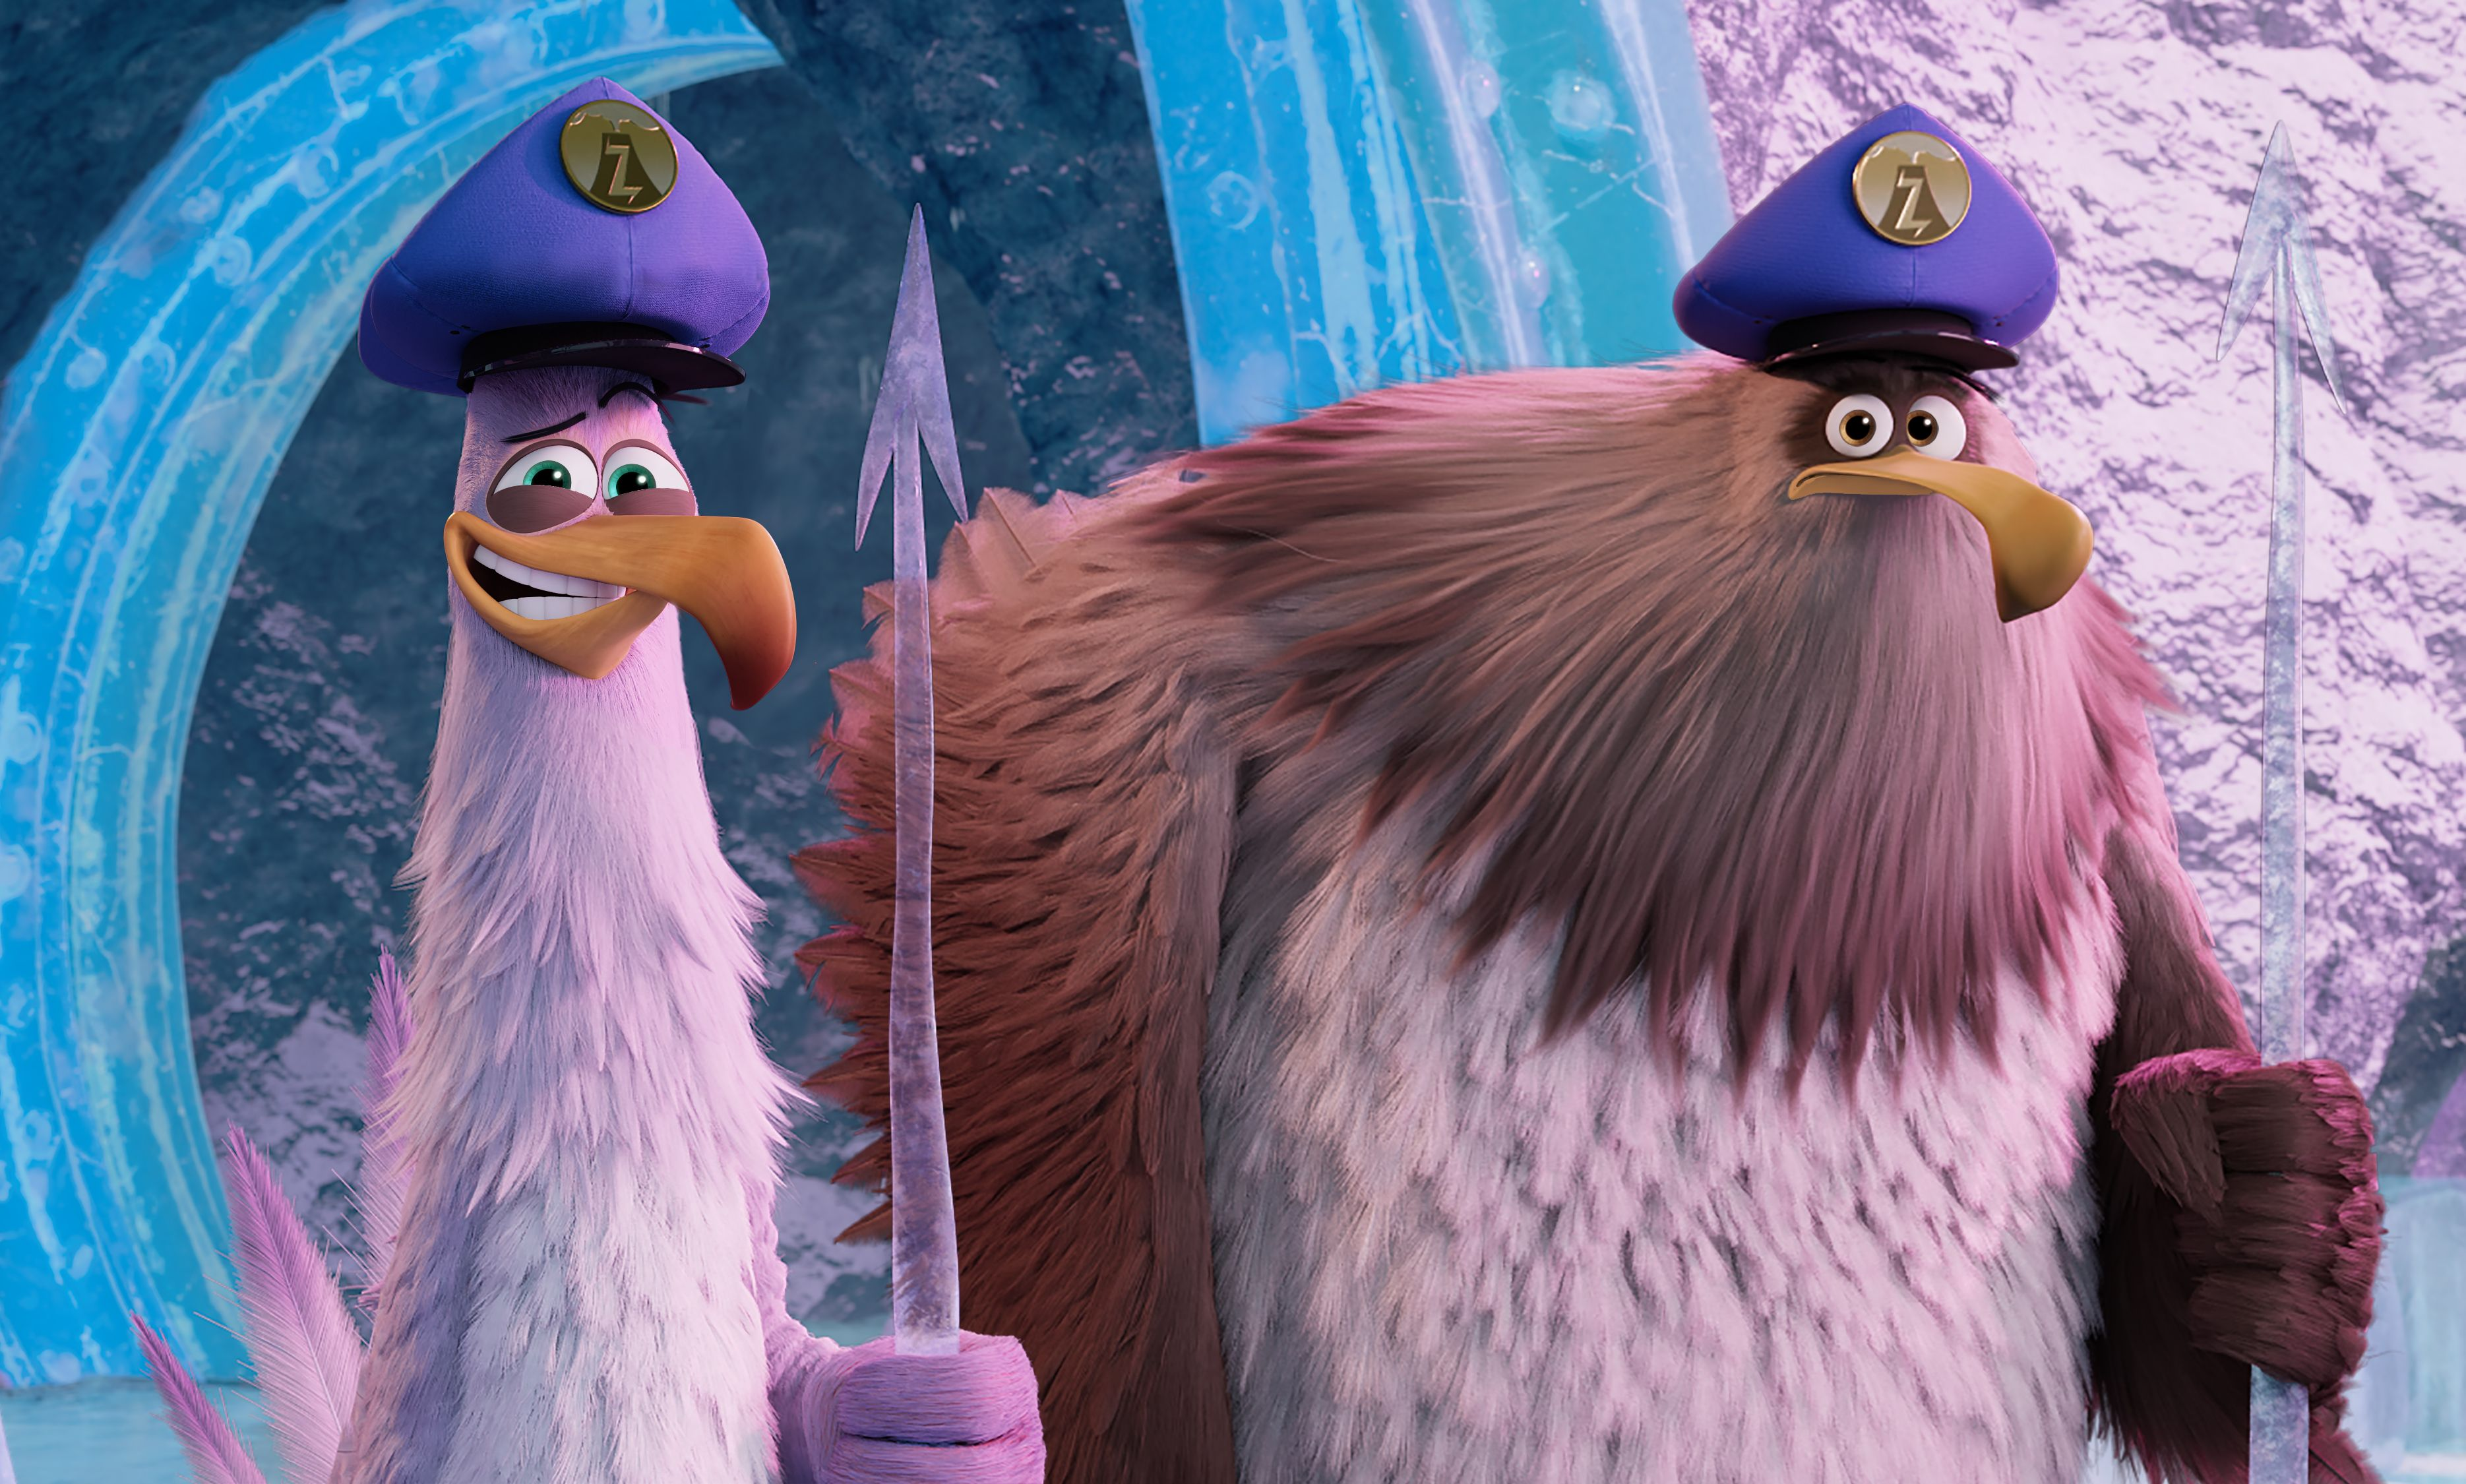 Meet Carl And Jerry In The Angry Birds Movie 2 Angry Birds Movie Angry Birds Angry Birds 2 Movie